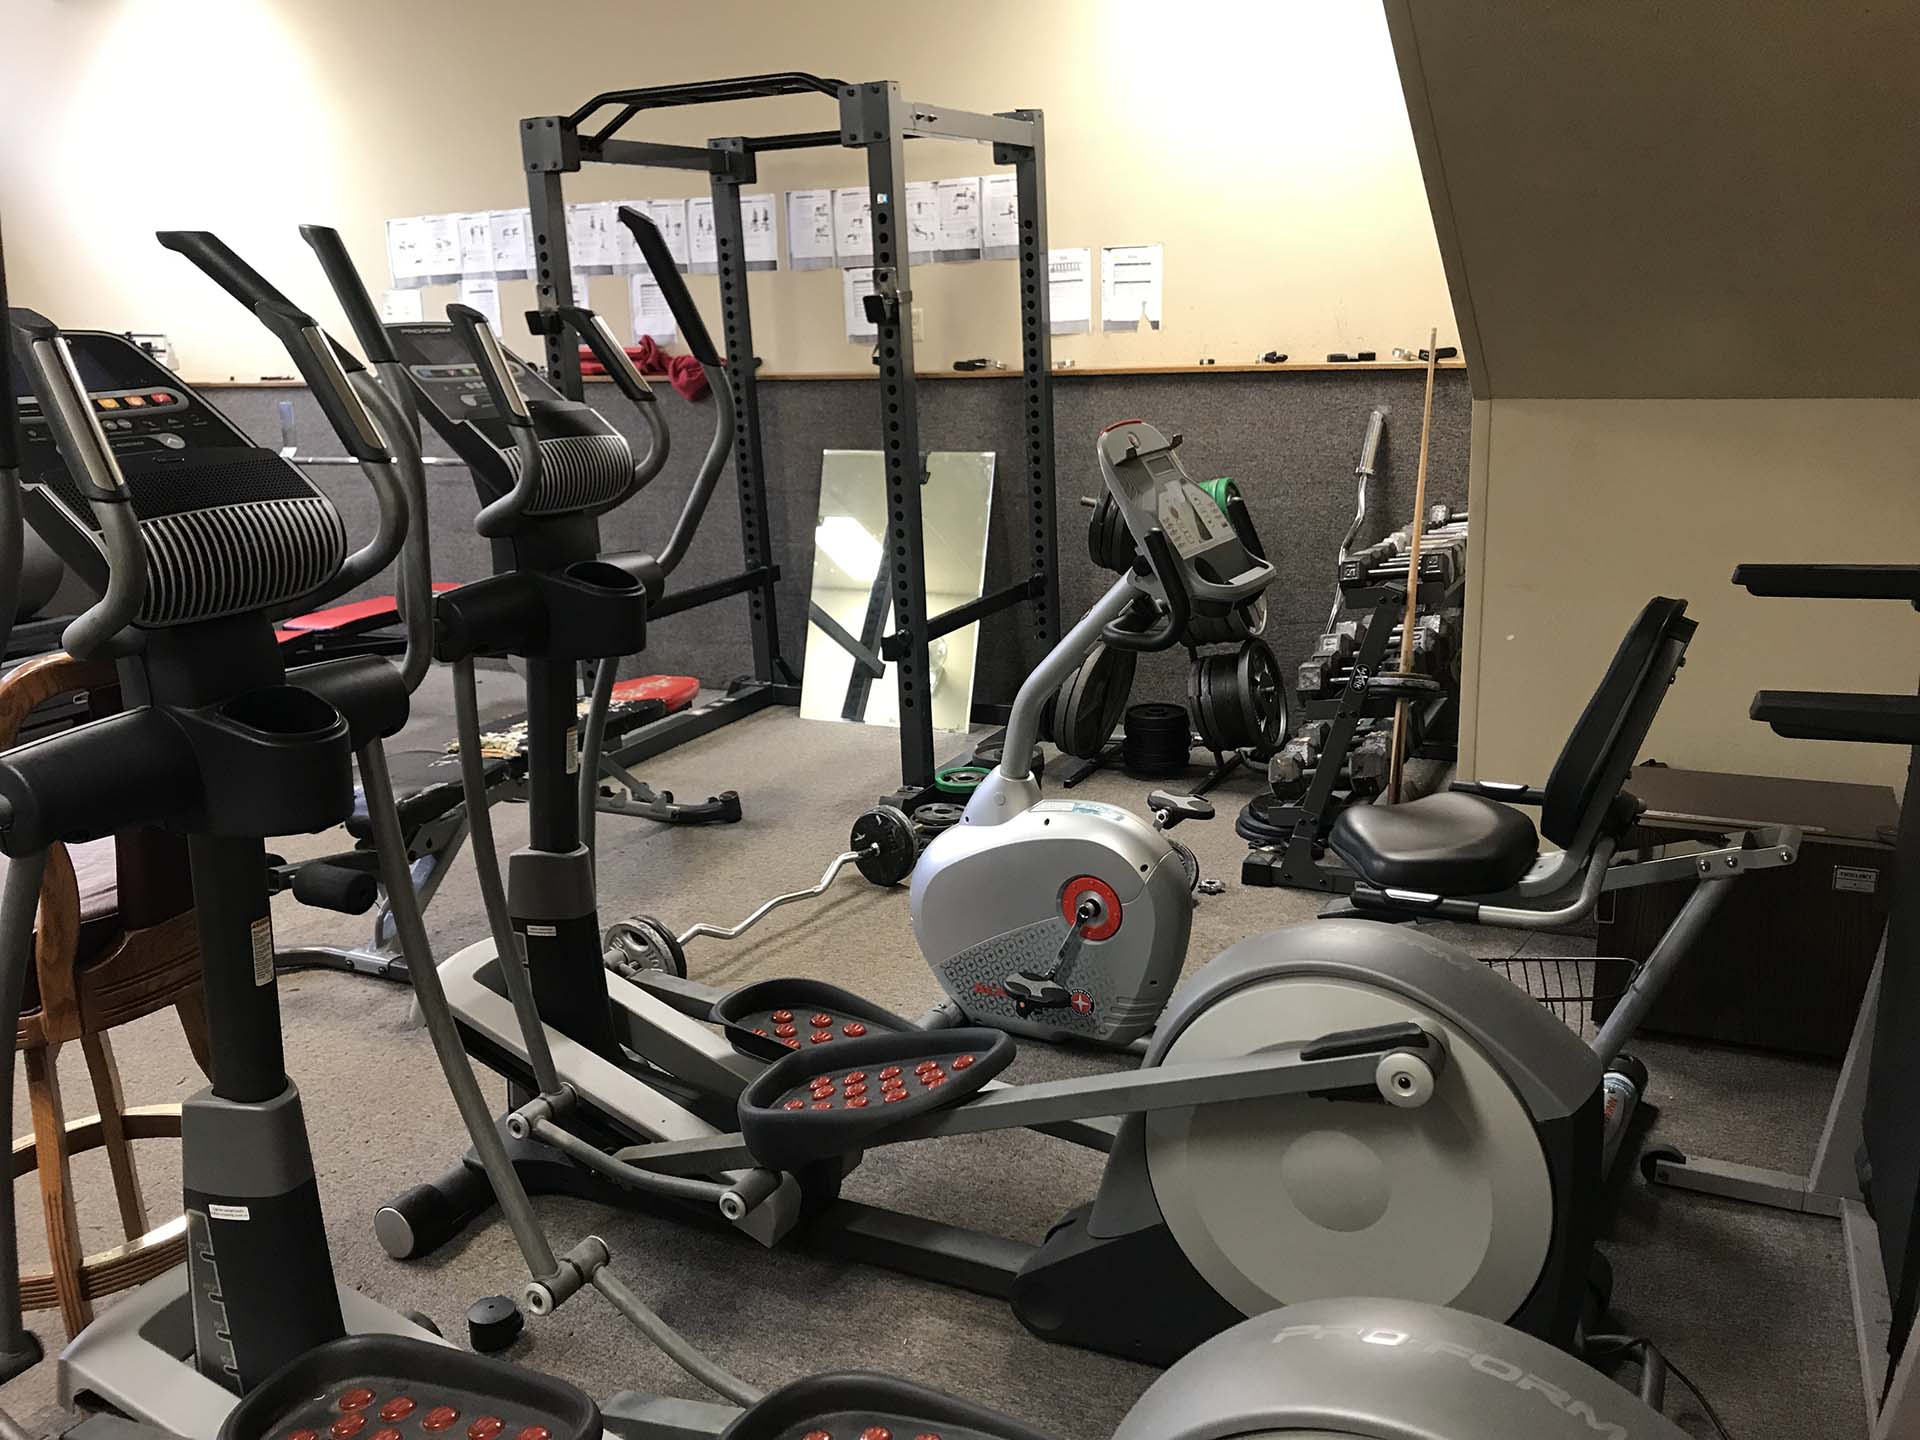 Exercise room at Shelter KC